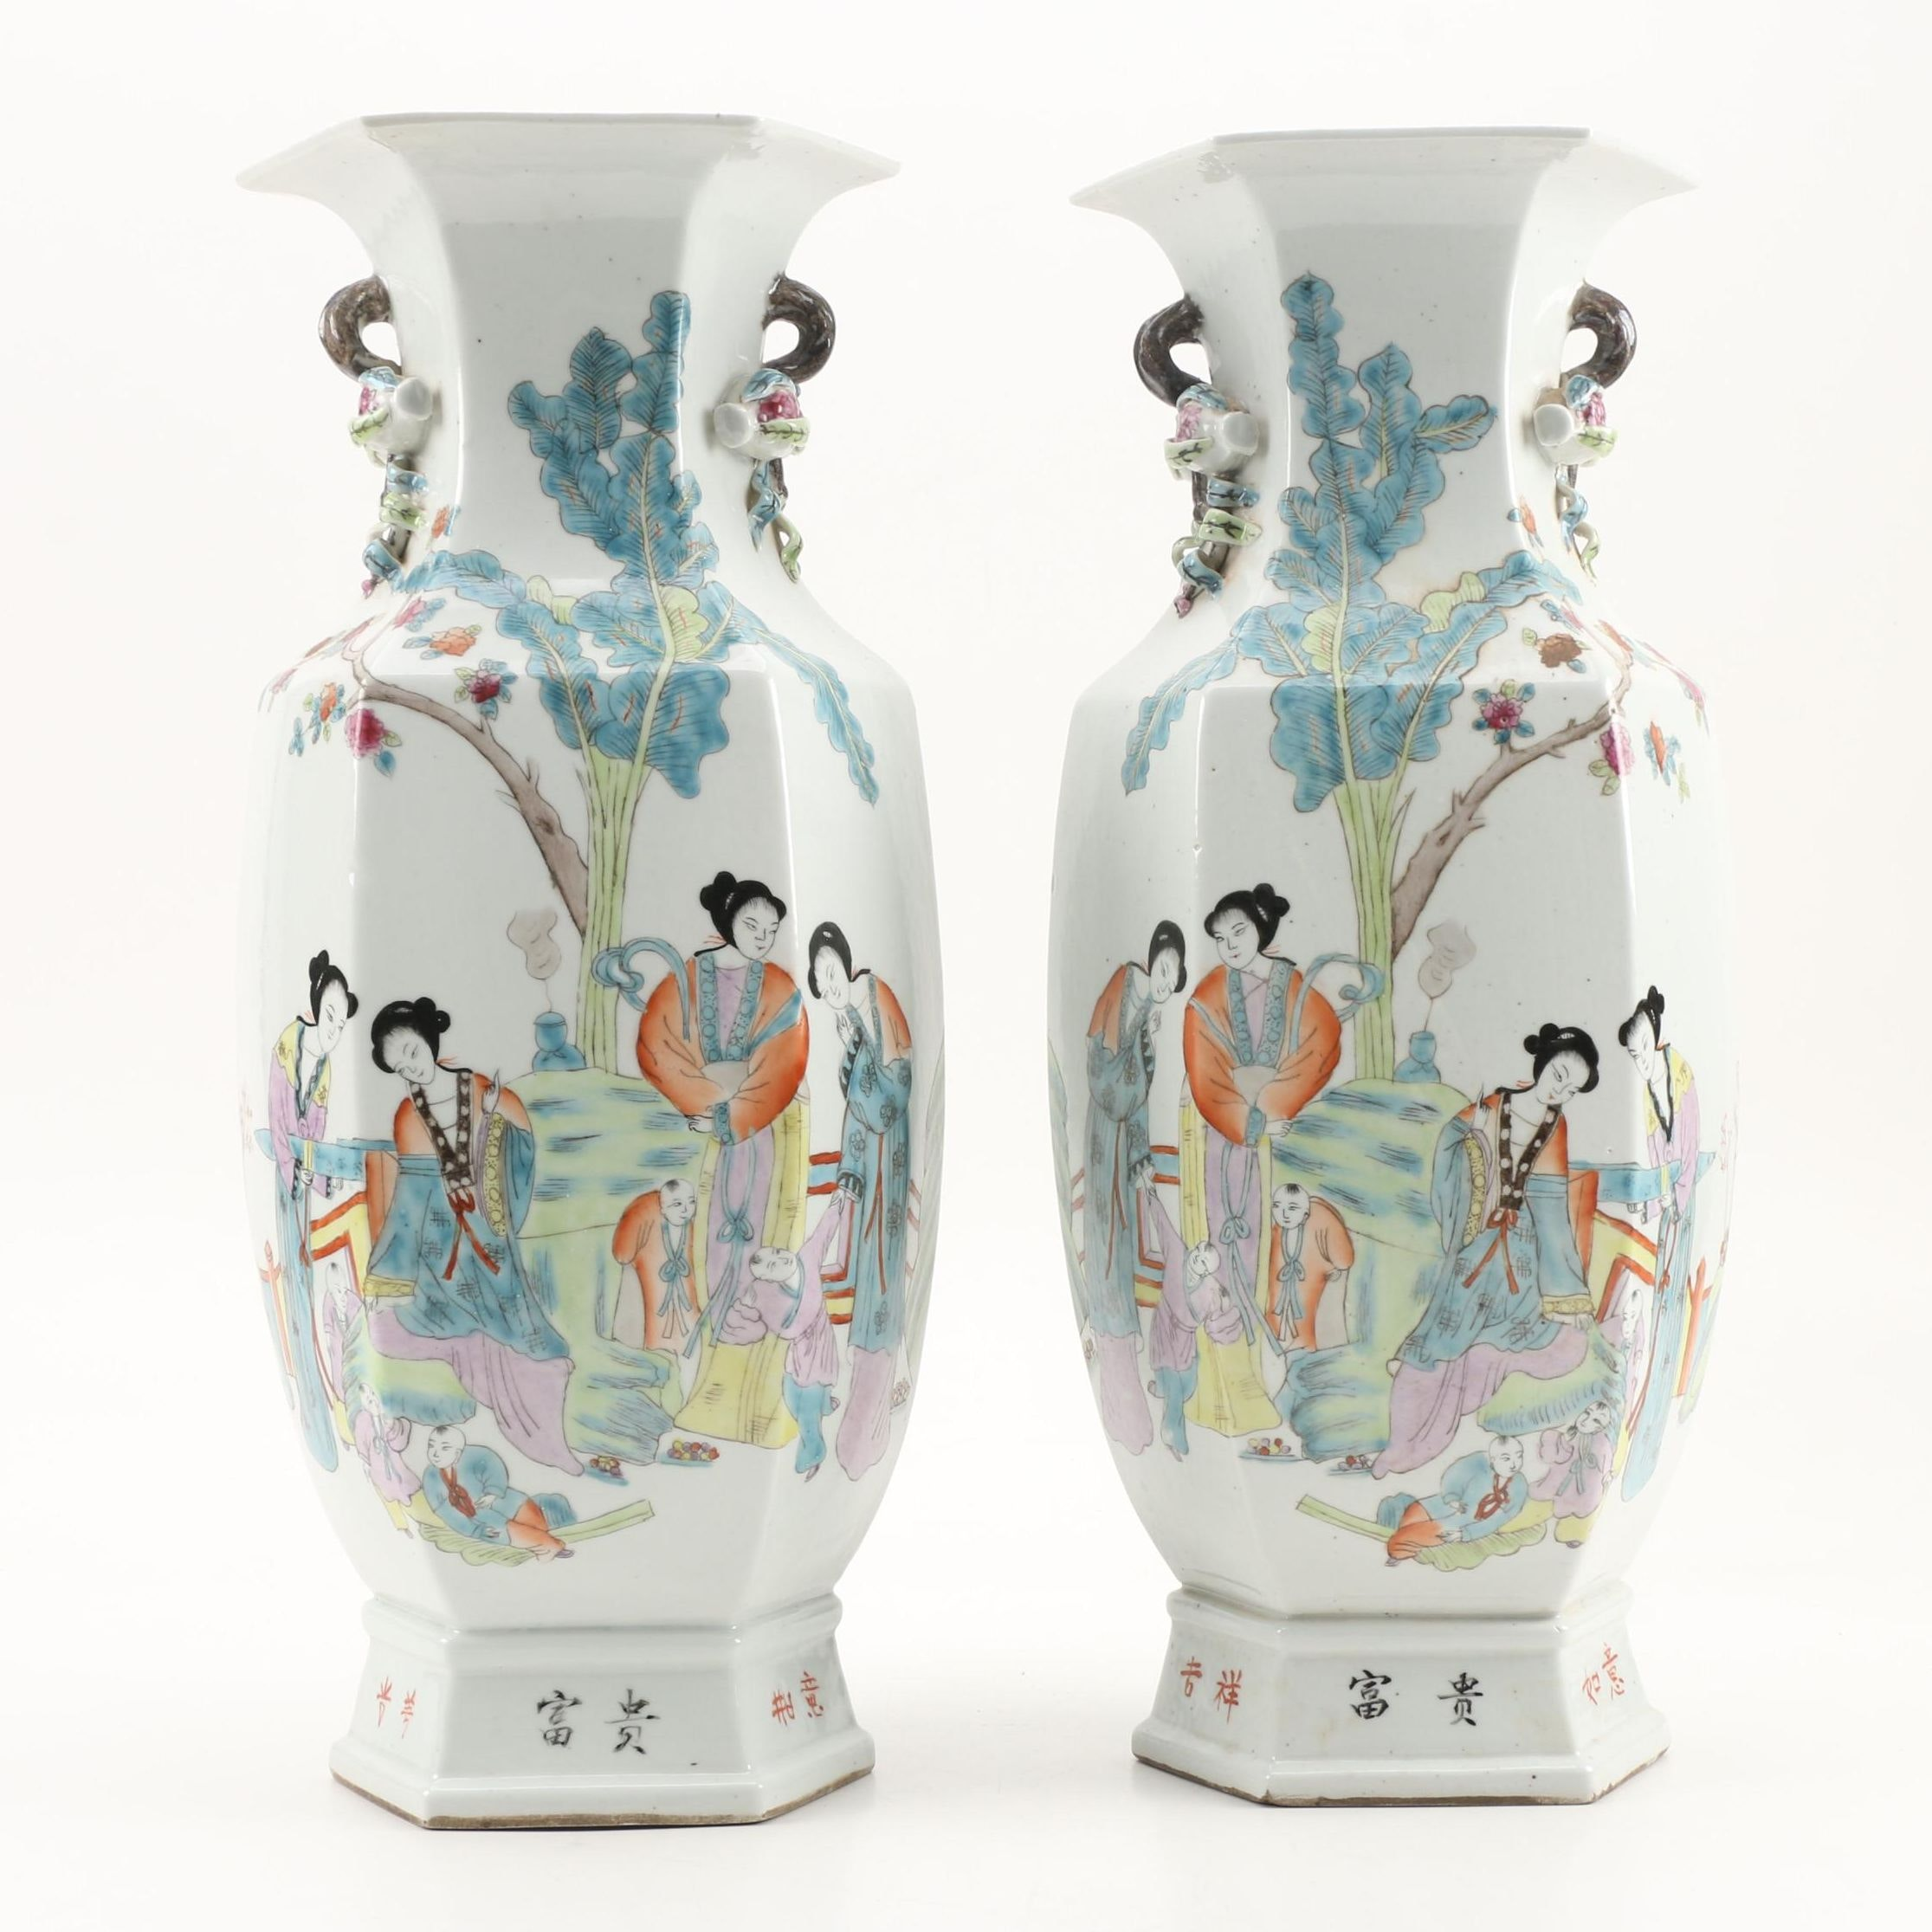 Yu Tong Chang Chinese Hand Painted Porcelain Vases, Republic Period